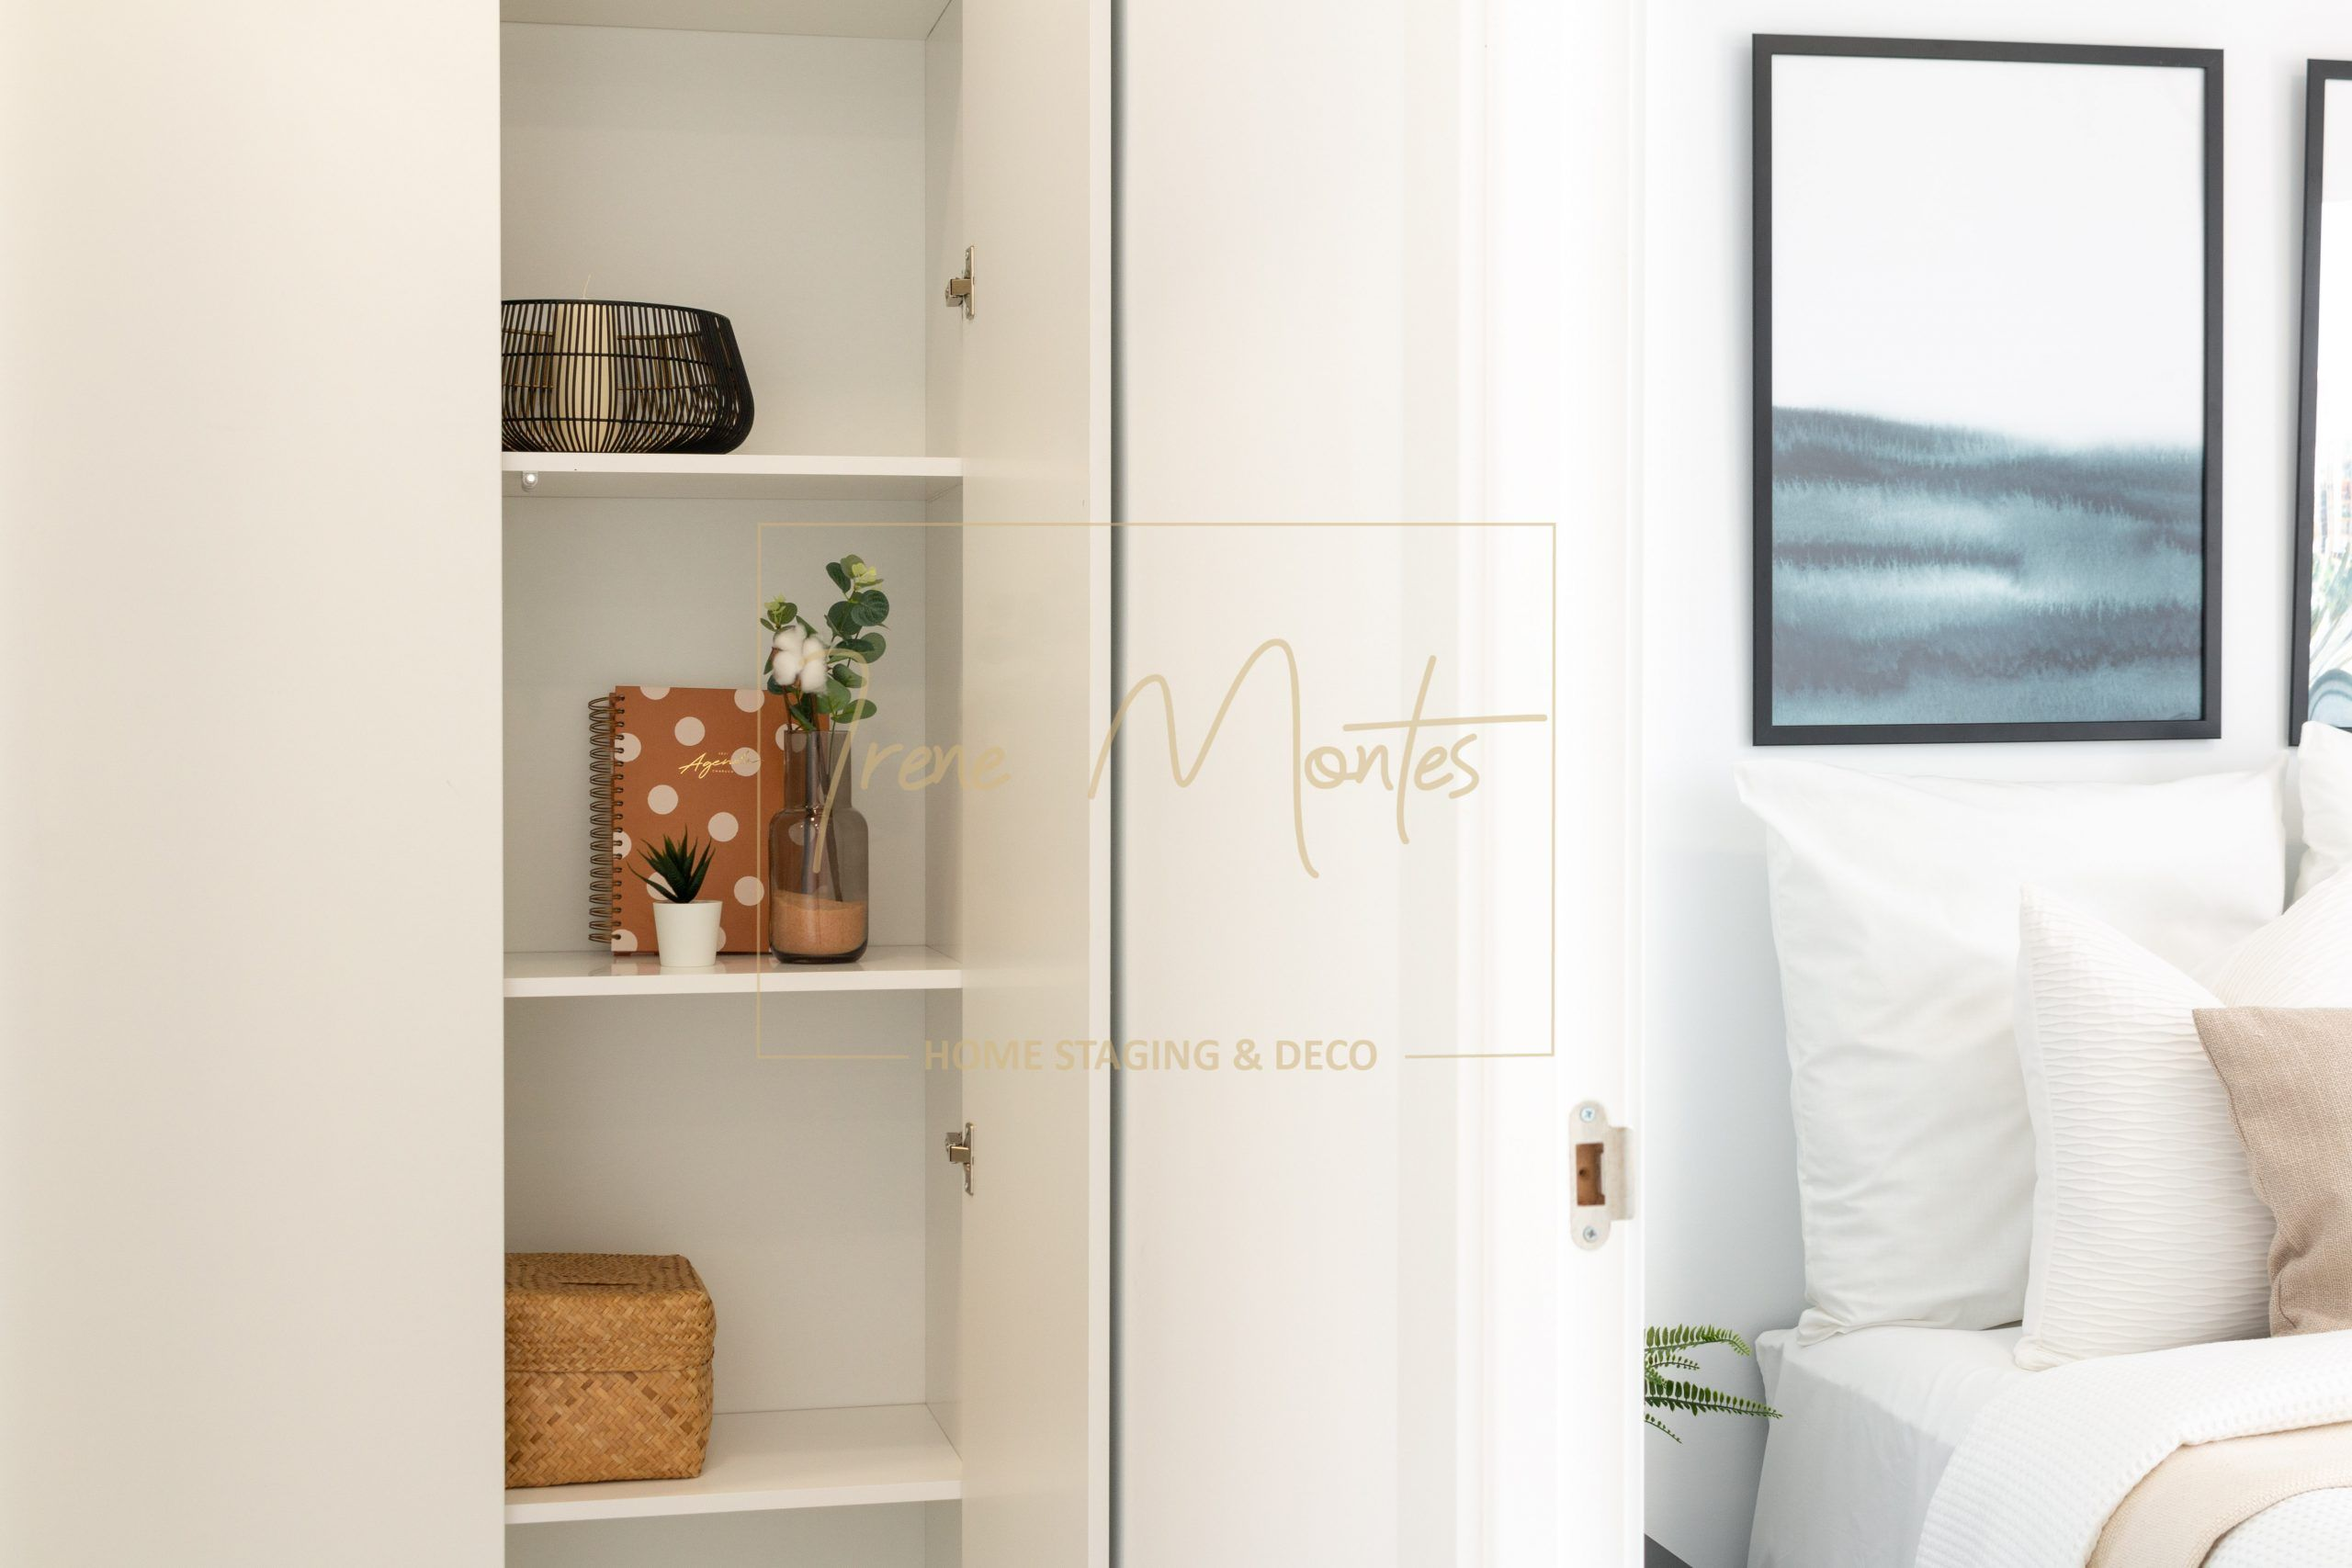 Vacacional home staging